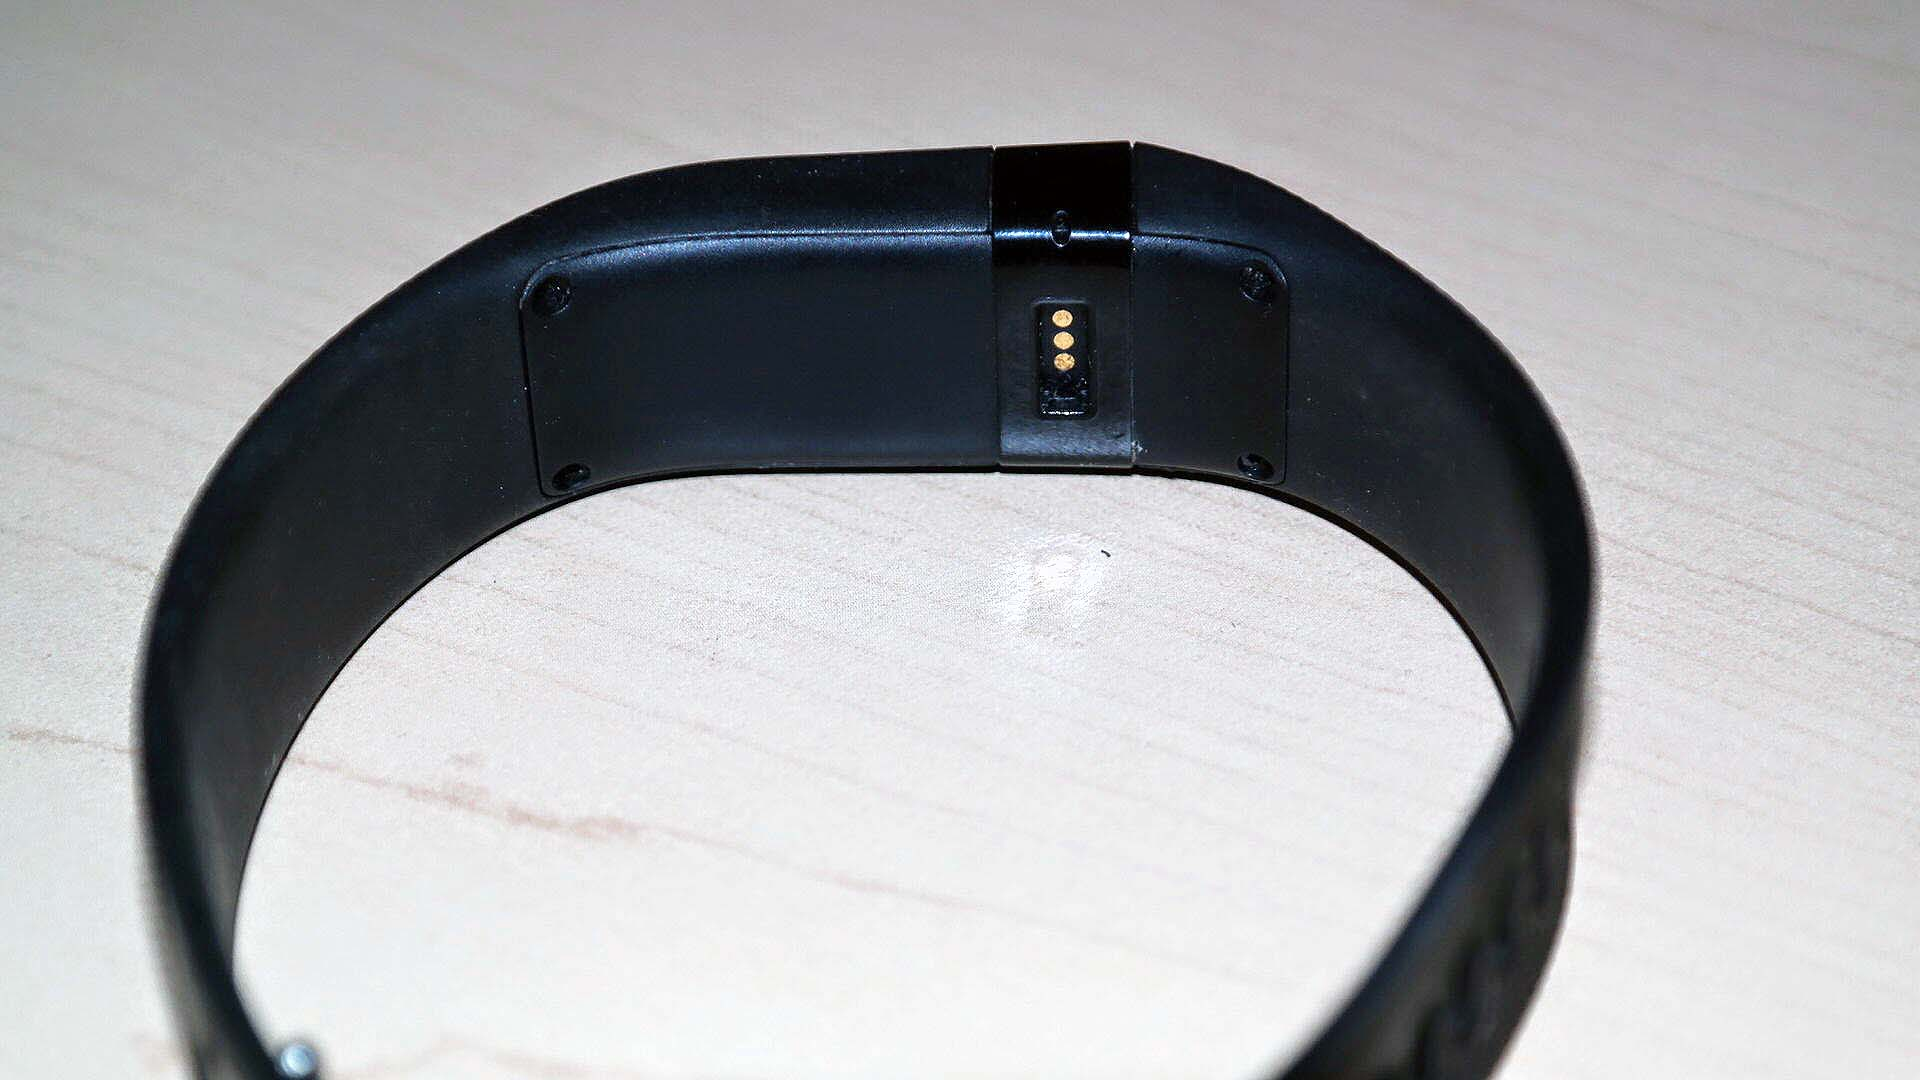 Fitbit charge activity tracker review you can see the status of your trackers battery life in the app it would be nice if there was a way to tell on the tracker itself the charge has good sciox Image collections